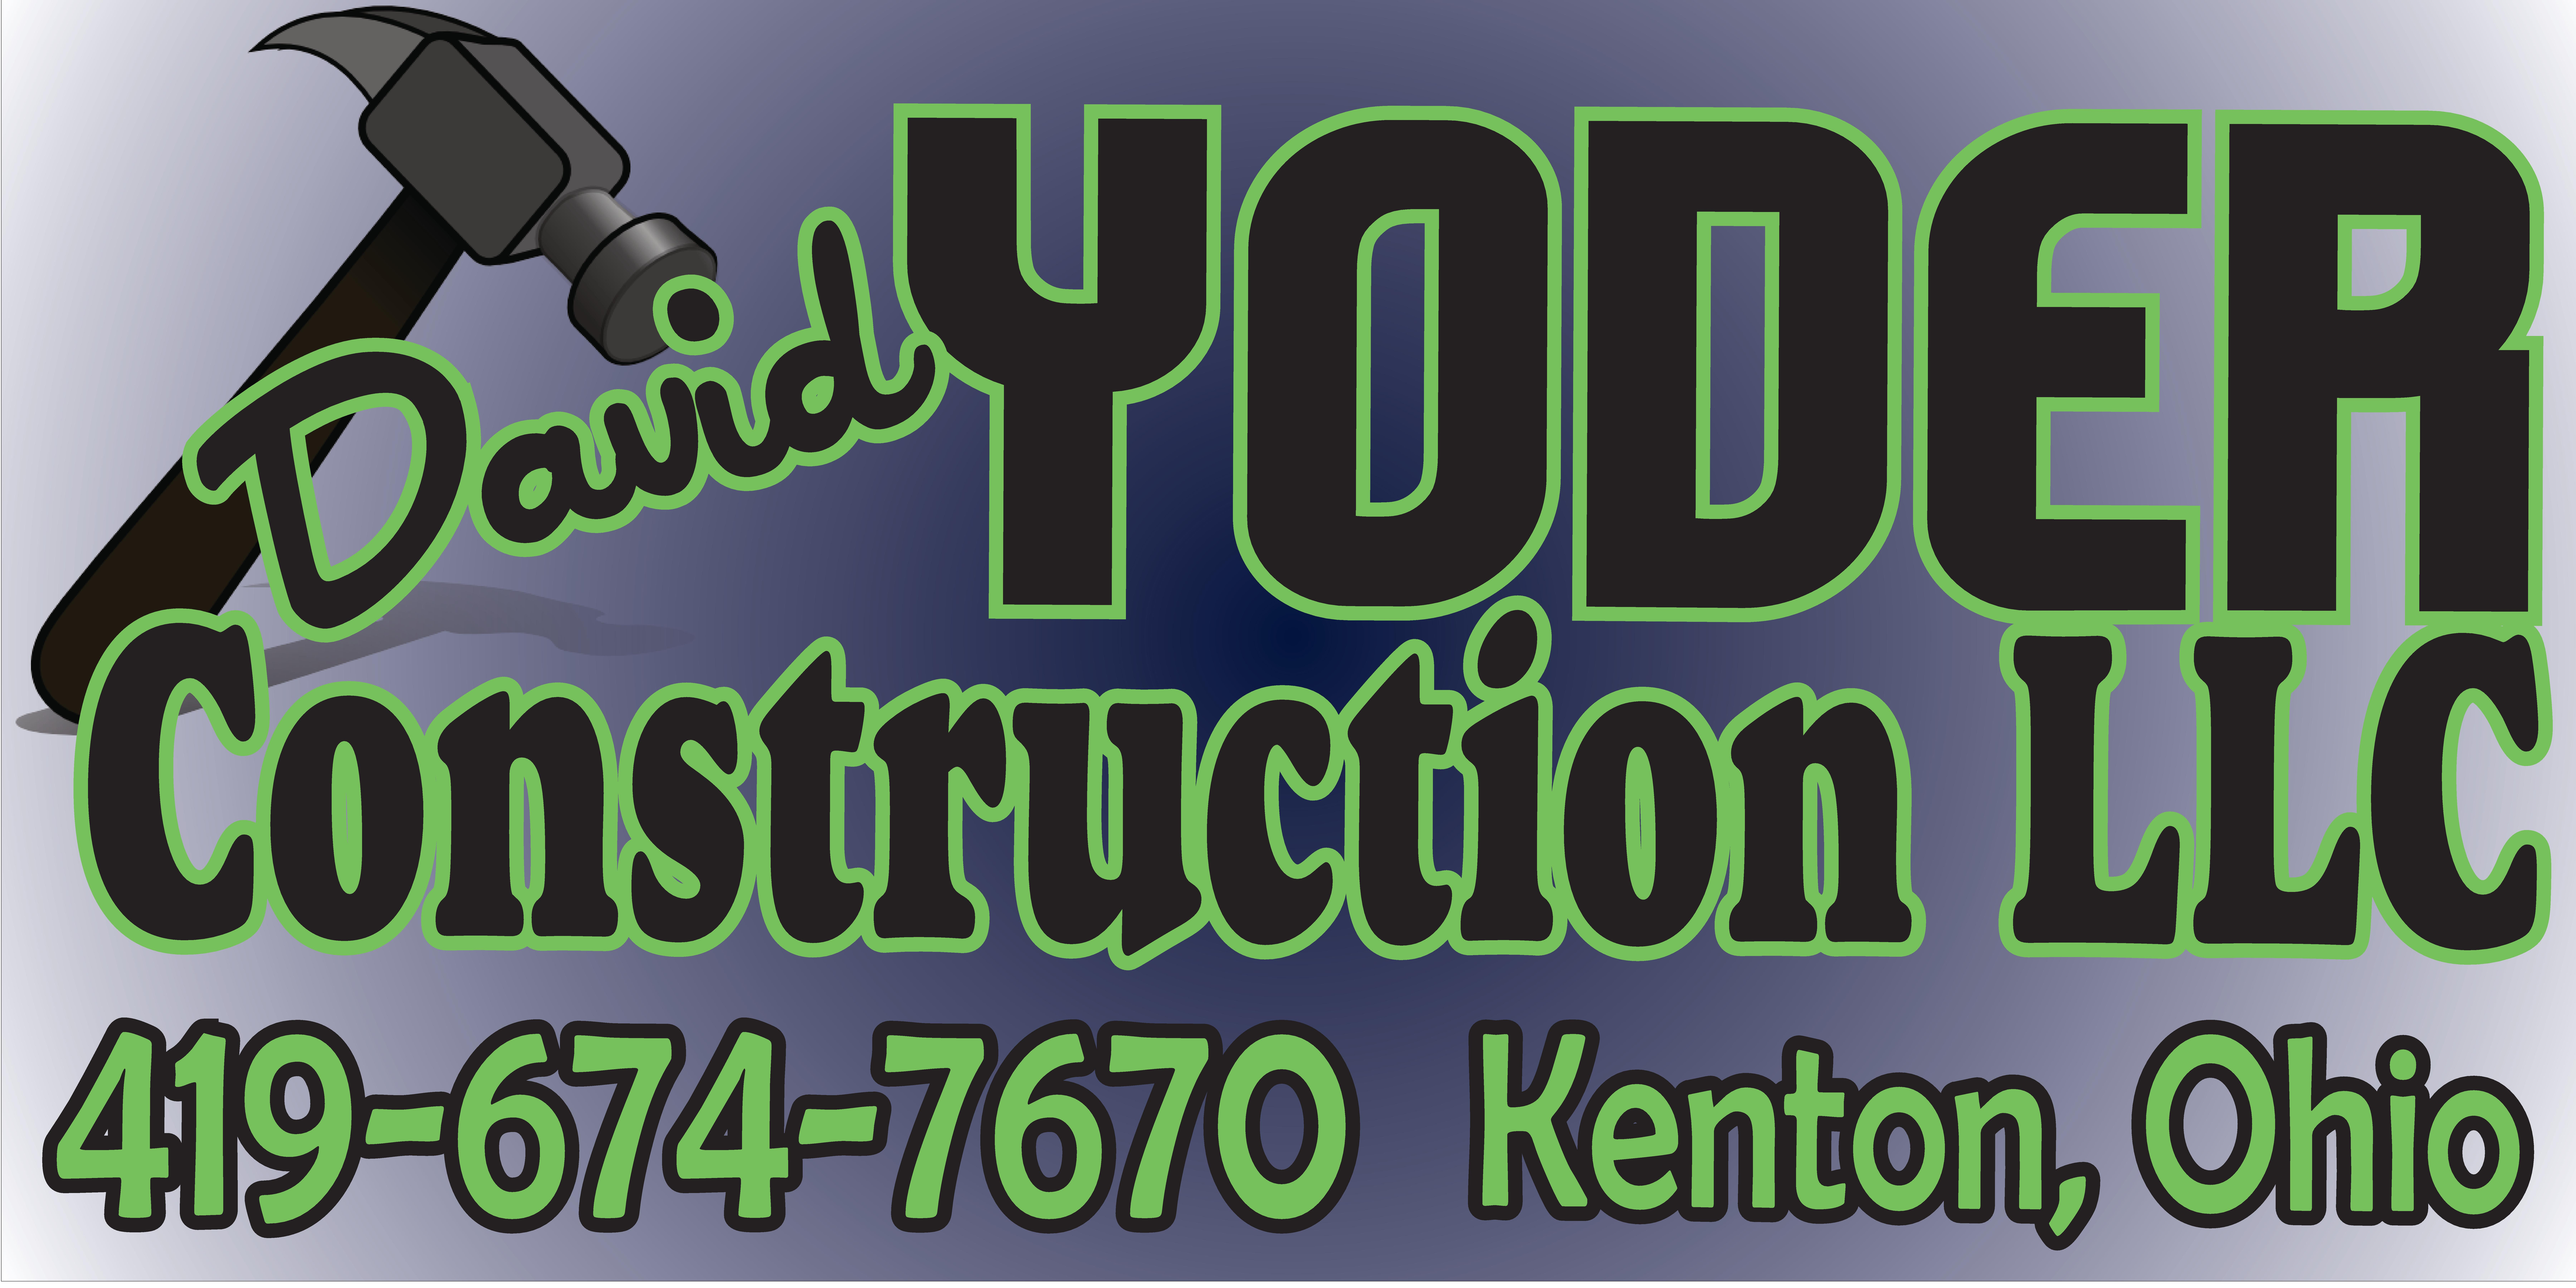 David Yoder Construction, LLC